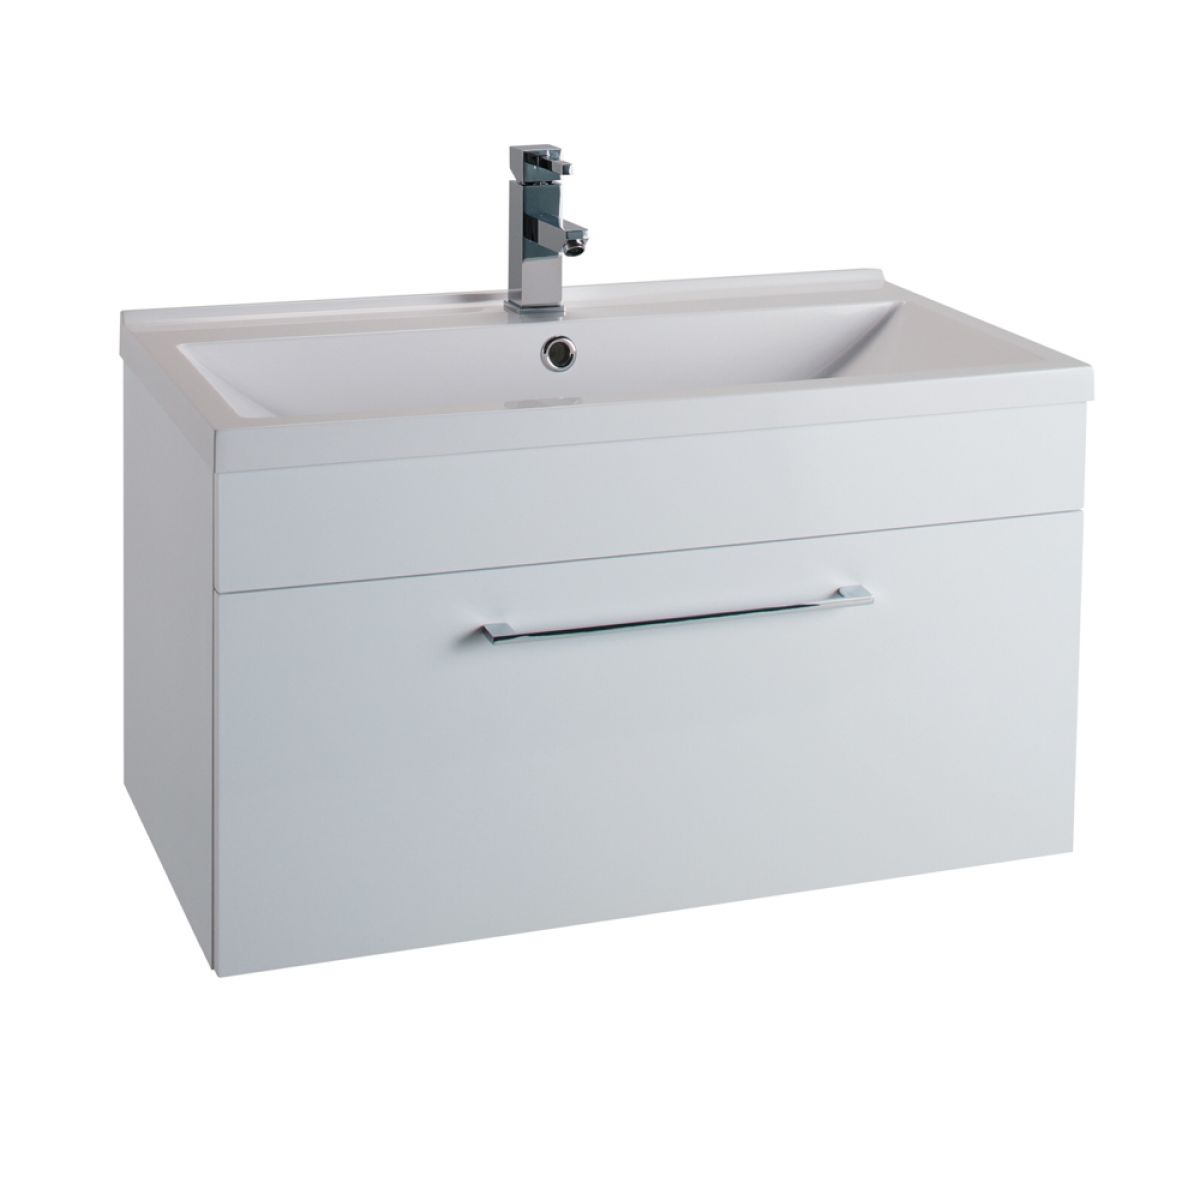 Cassellie Idon White Wall Hung Vanity Unit 800mm